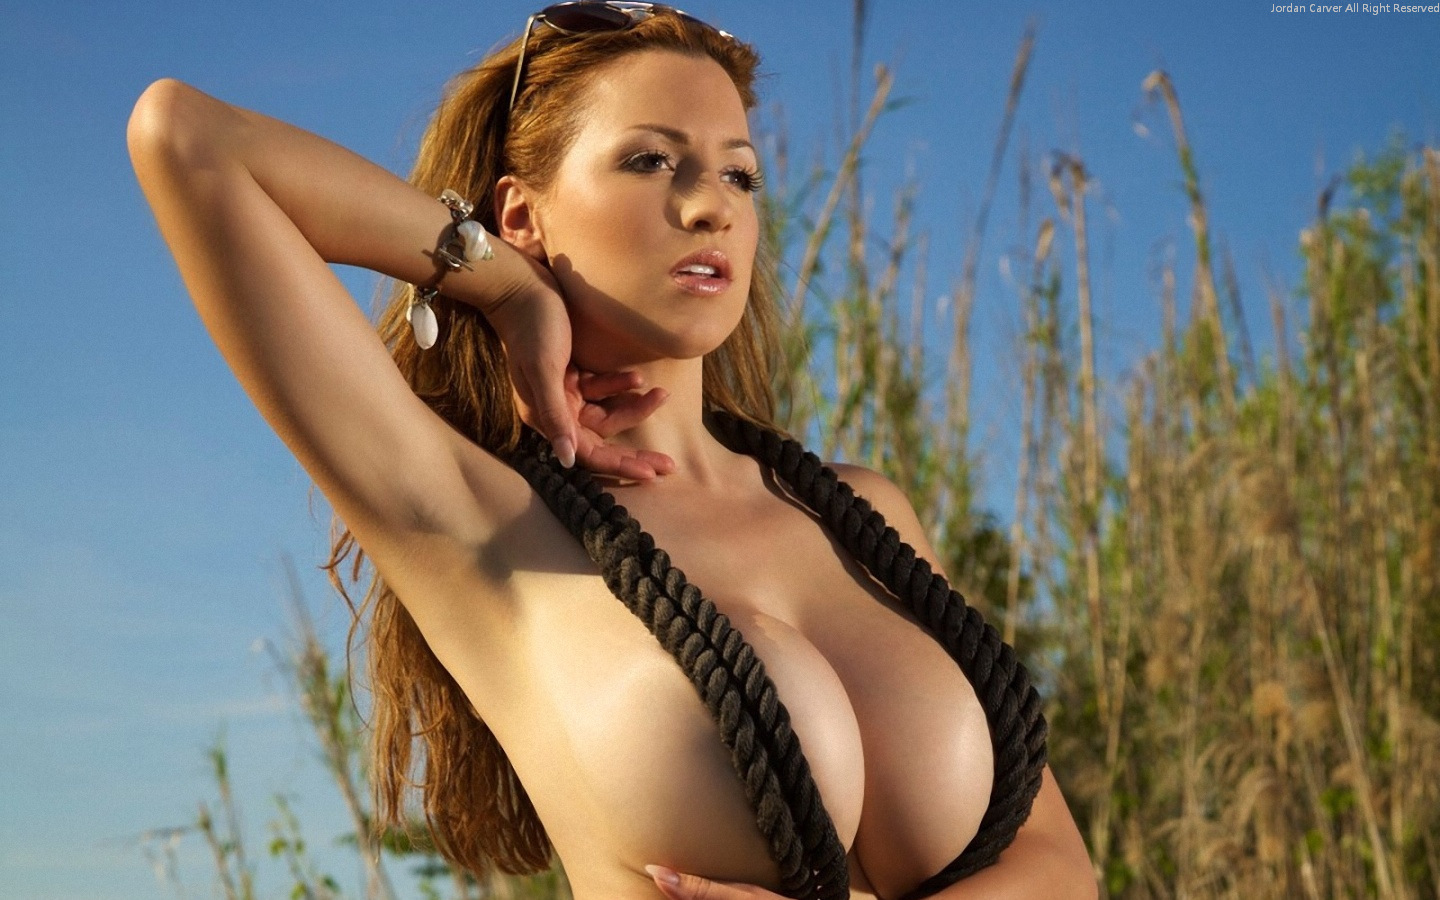 Jordan Carver the Ultimate Boob Collection - and Our ...